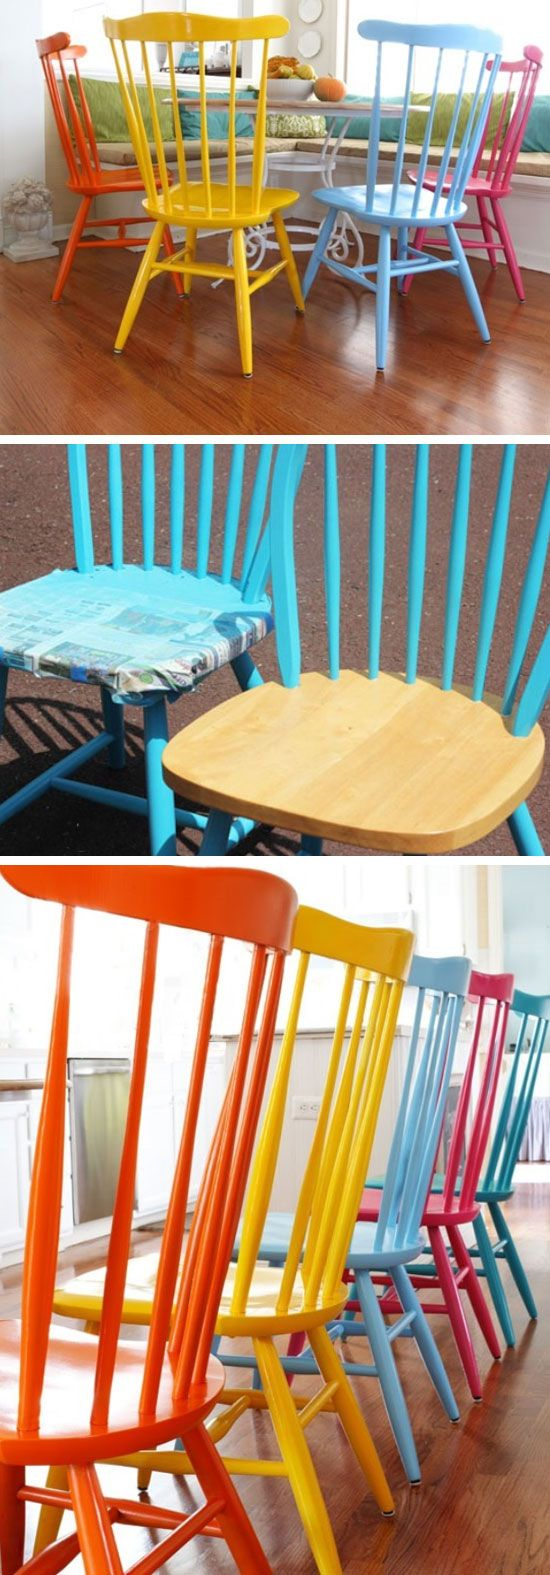 Spray Painting Wood Chairs | DIY Home Decorating on a Budget | DIY Projects for the Home Dollar Store